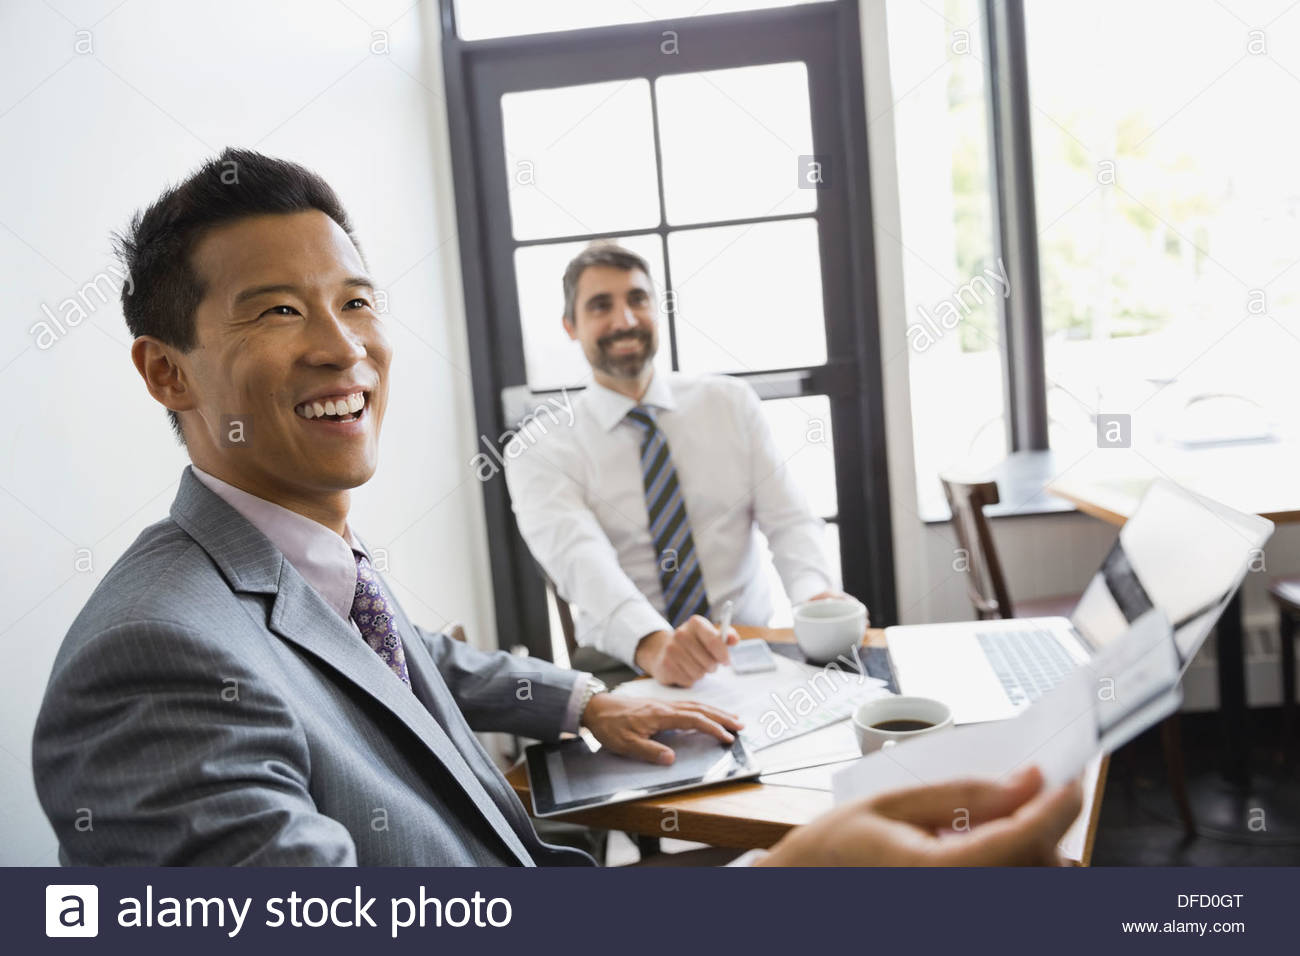 Businessman paying restaurant bill with credit card - Stock Image